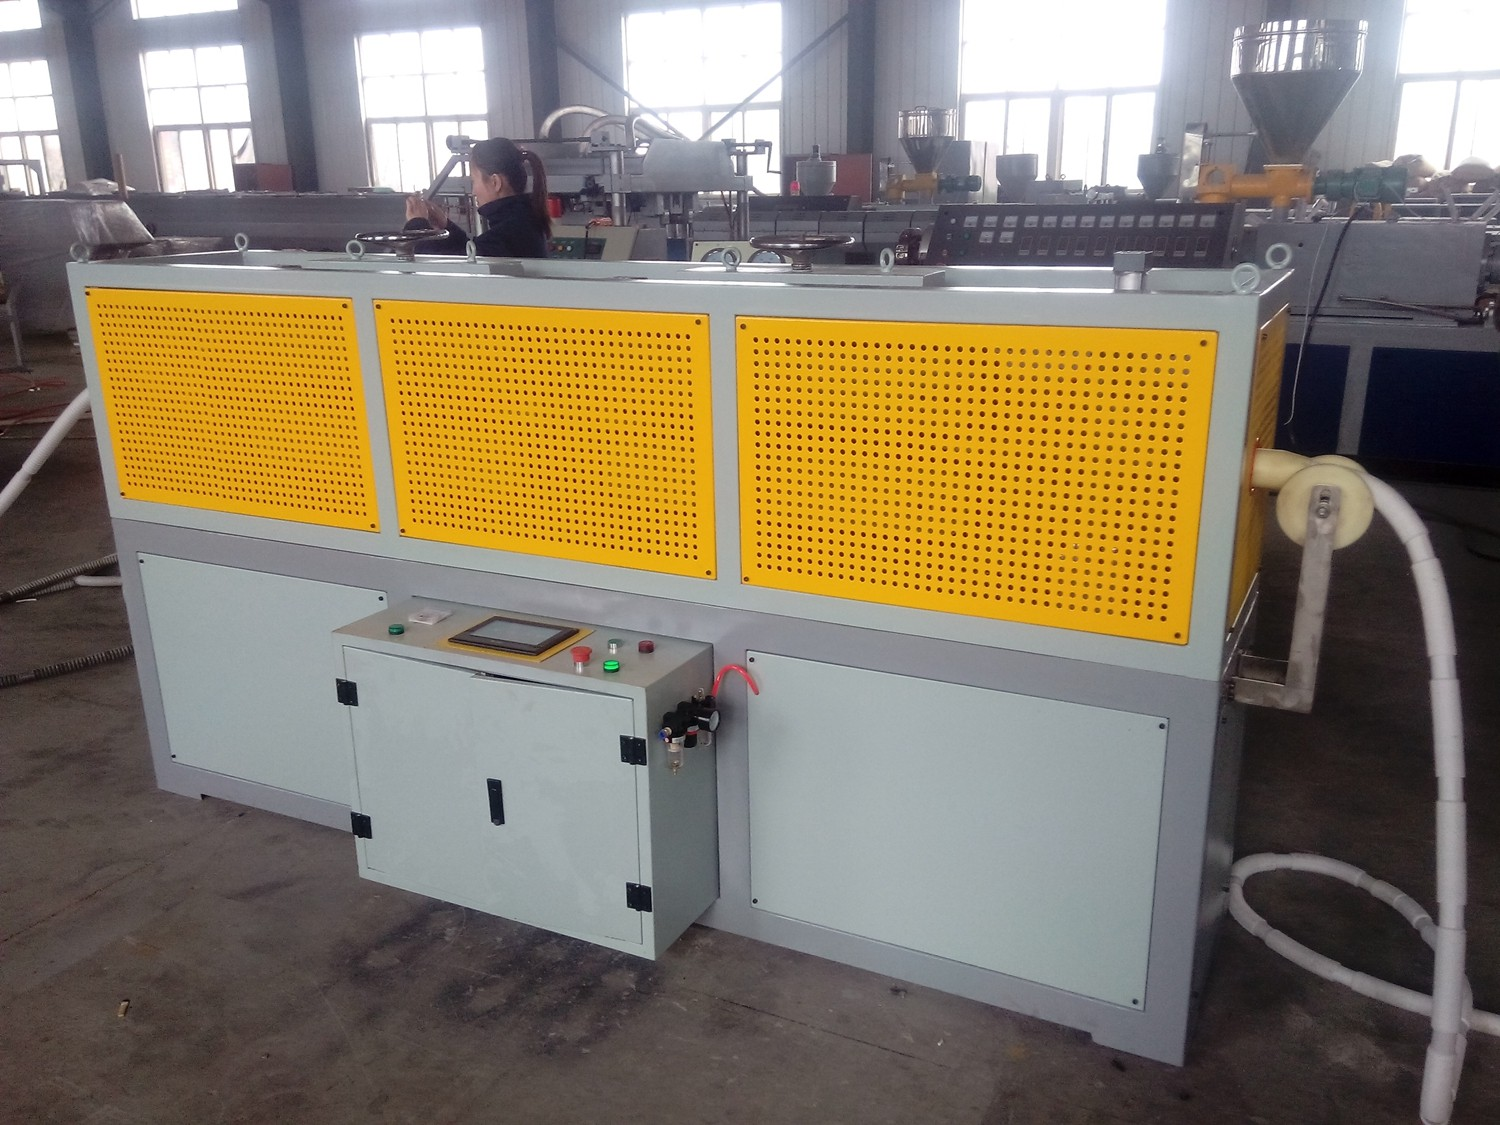 Magic corrugated pipe manufacturing machine with auto folding and cutting device